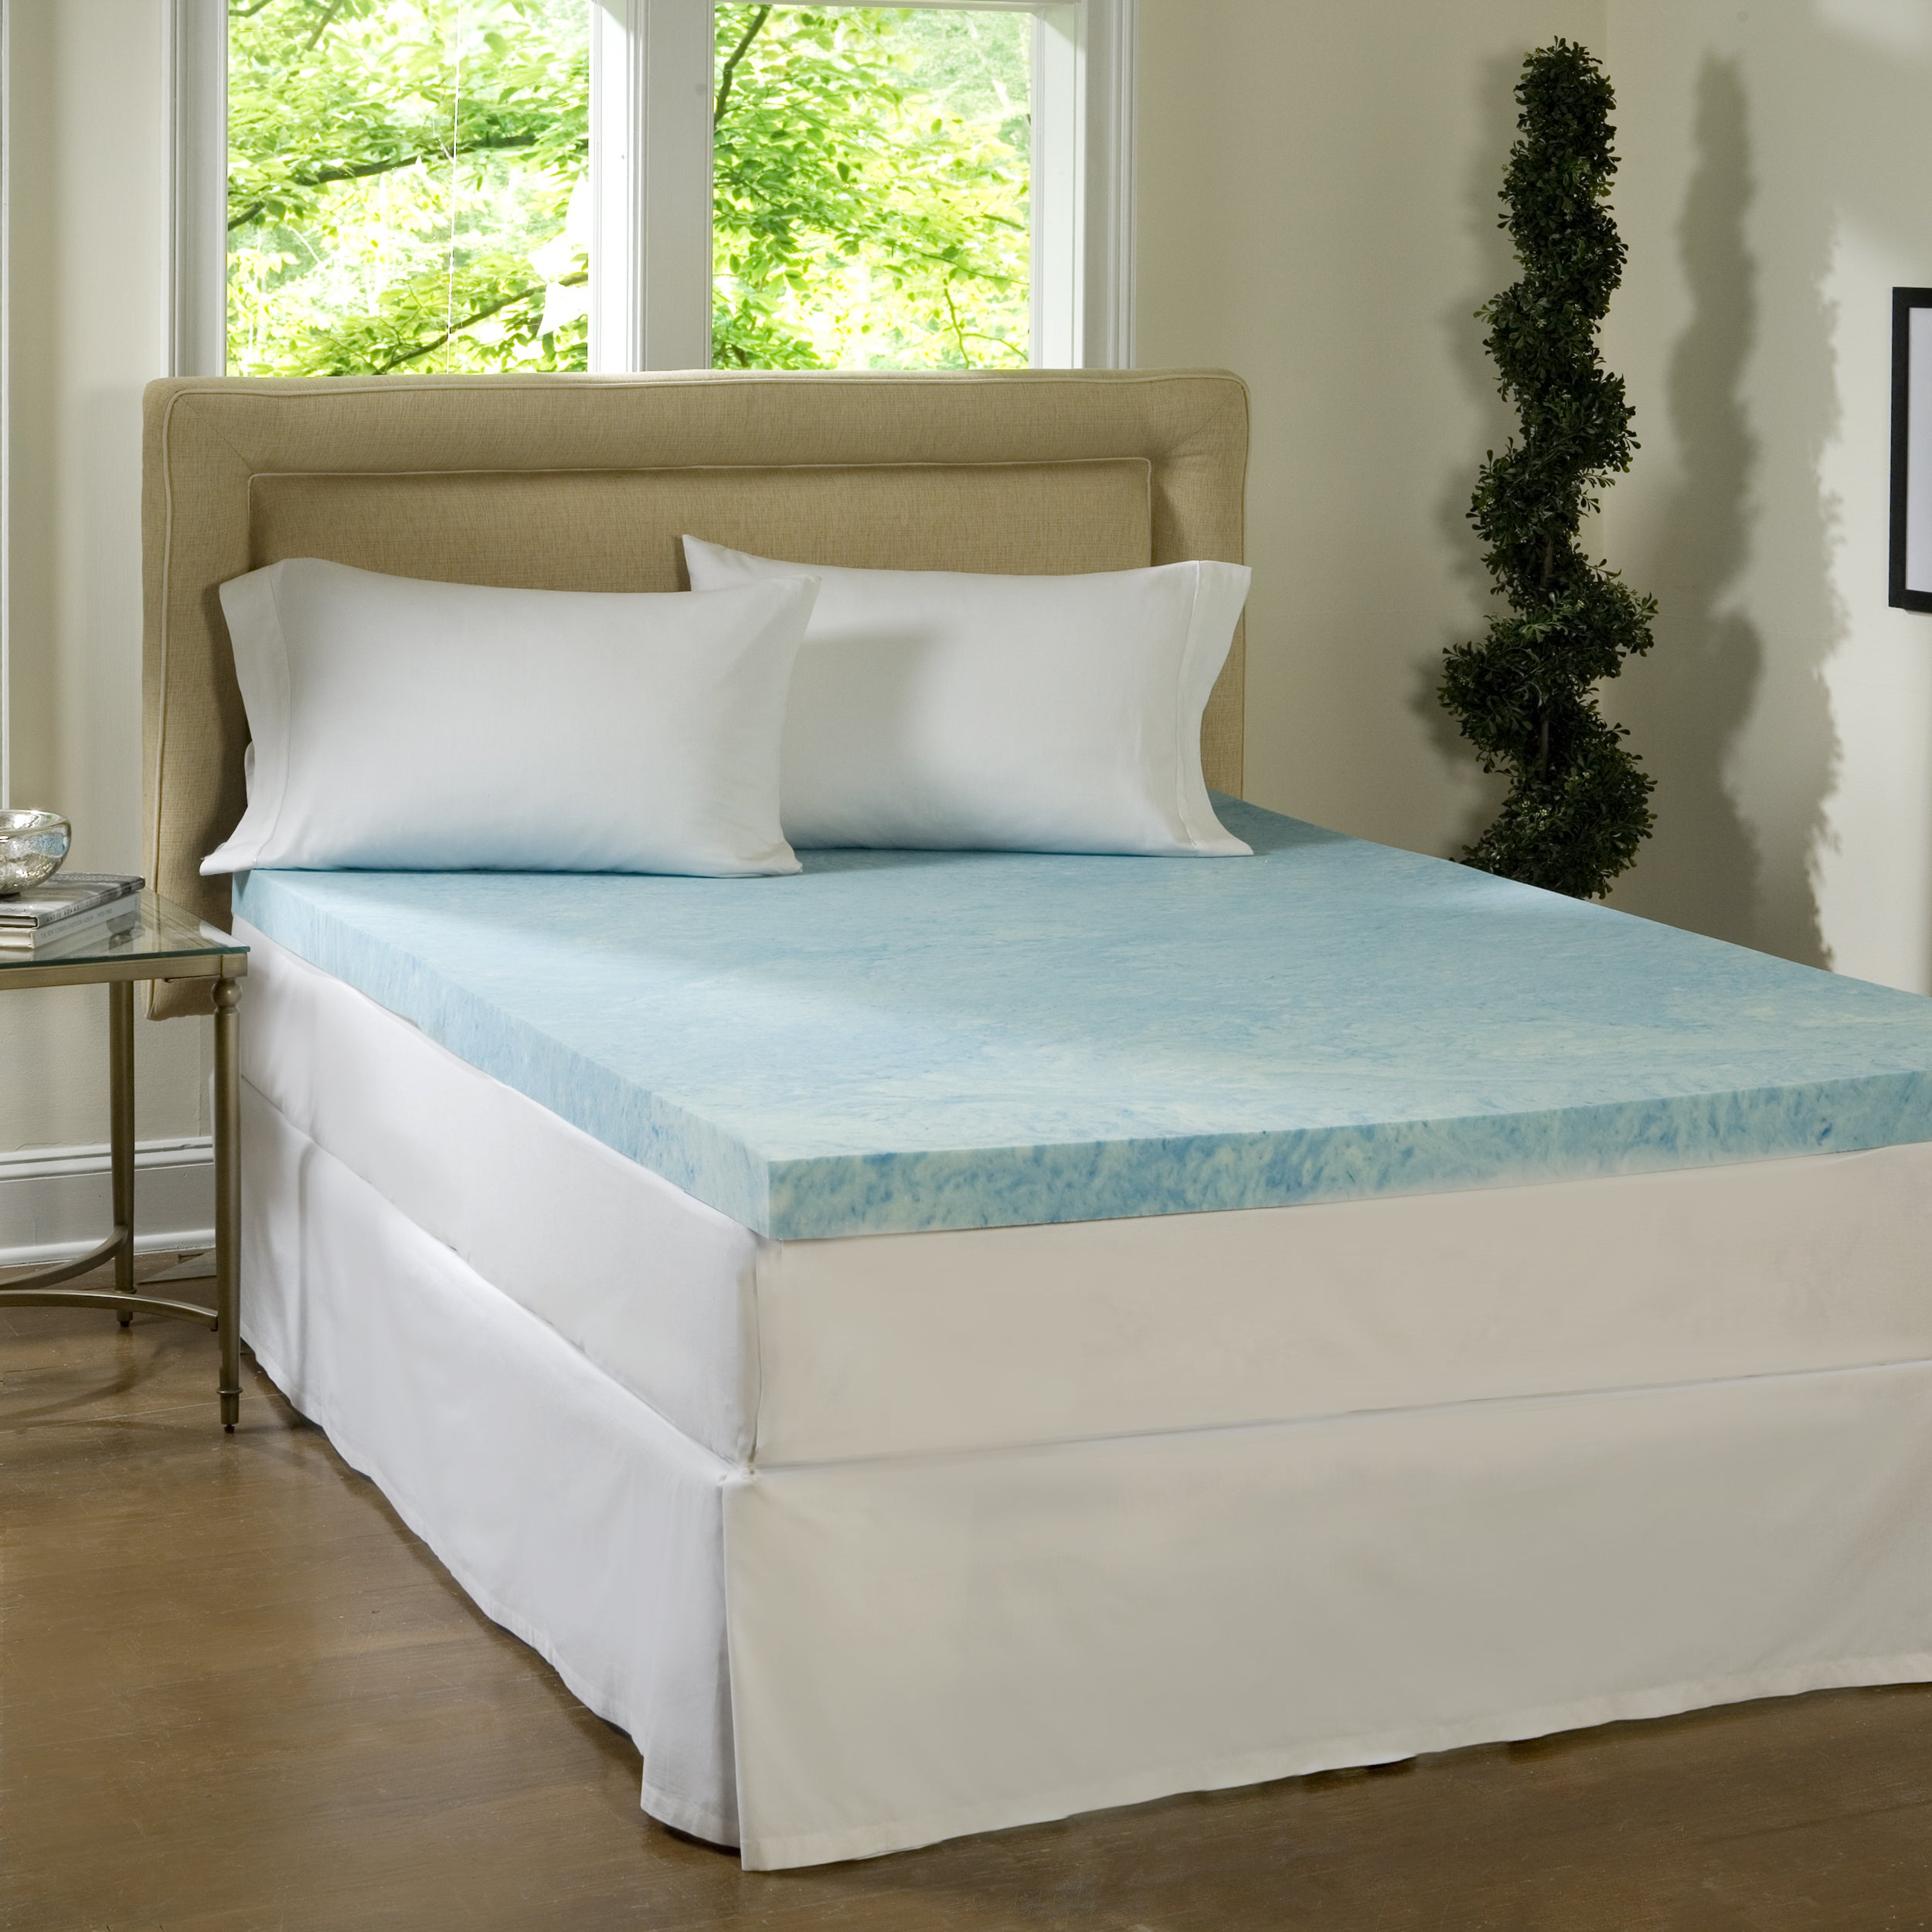 set shipping home from mattress overstock plush today comforter garden nourishing aeca product comforpedic comfort beautyrest free pedic